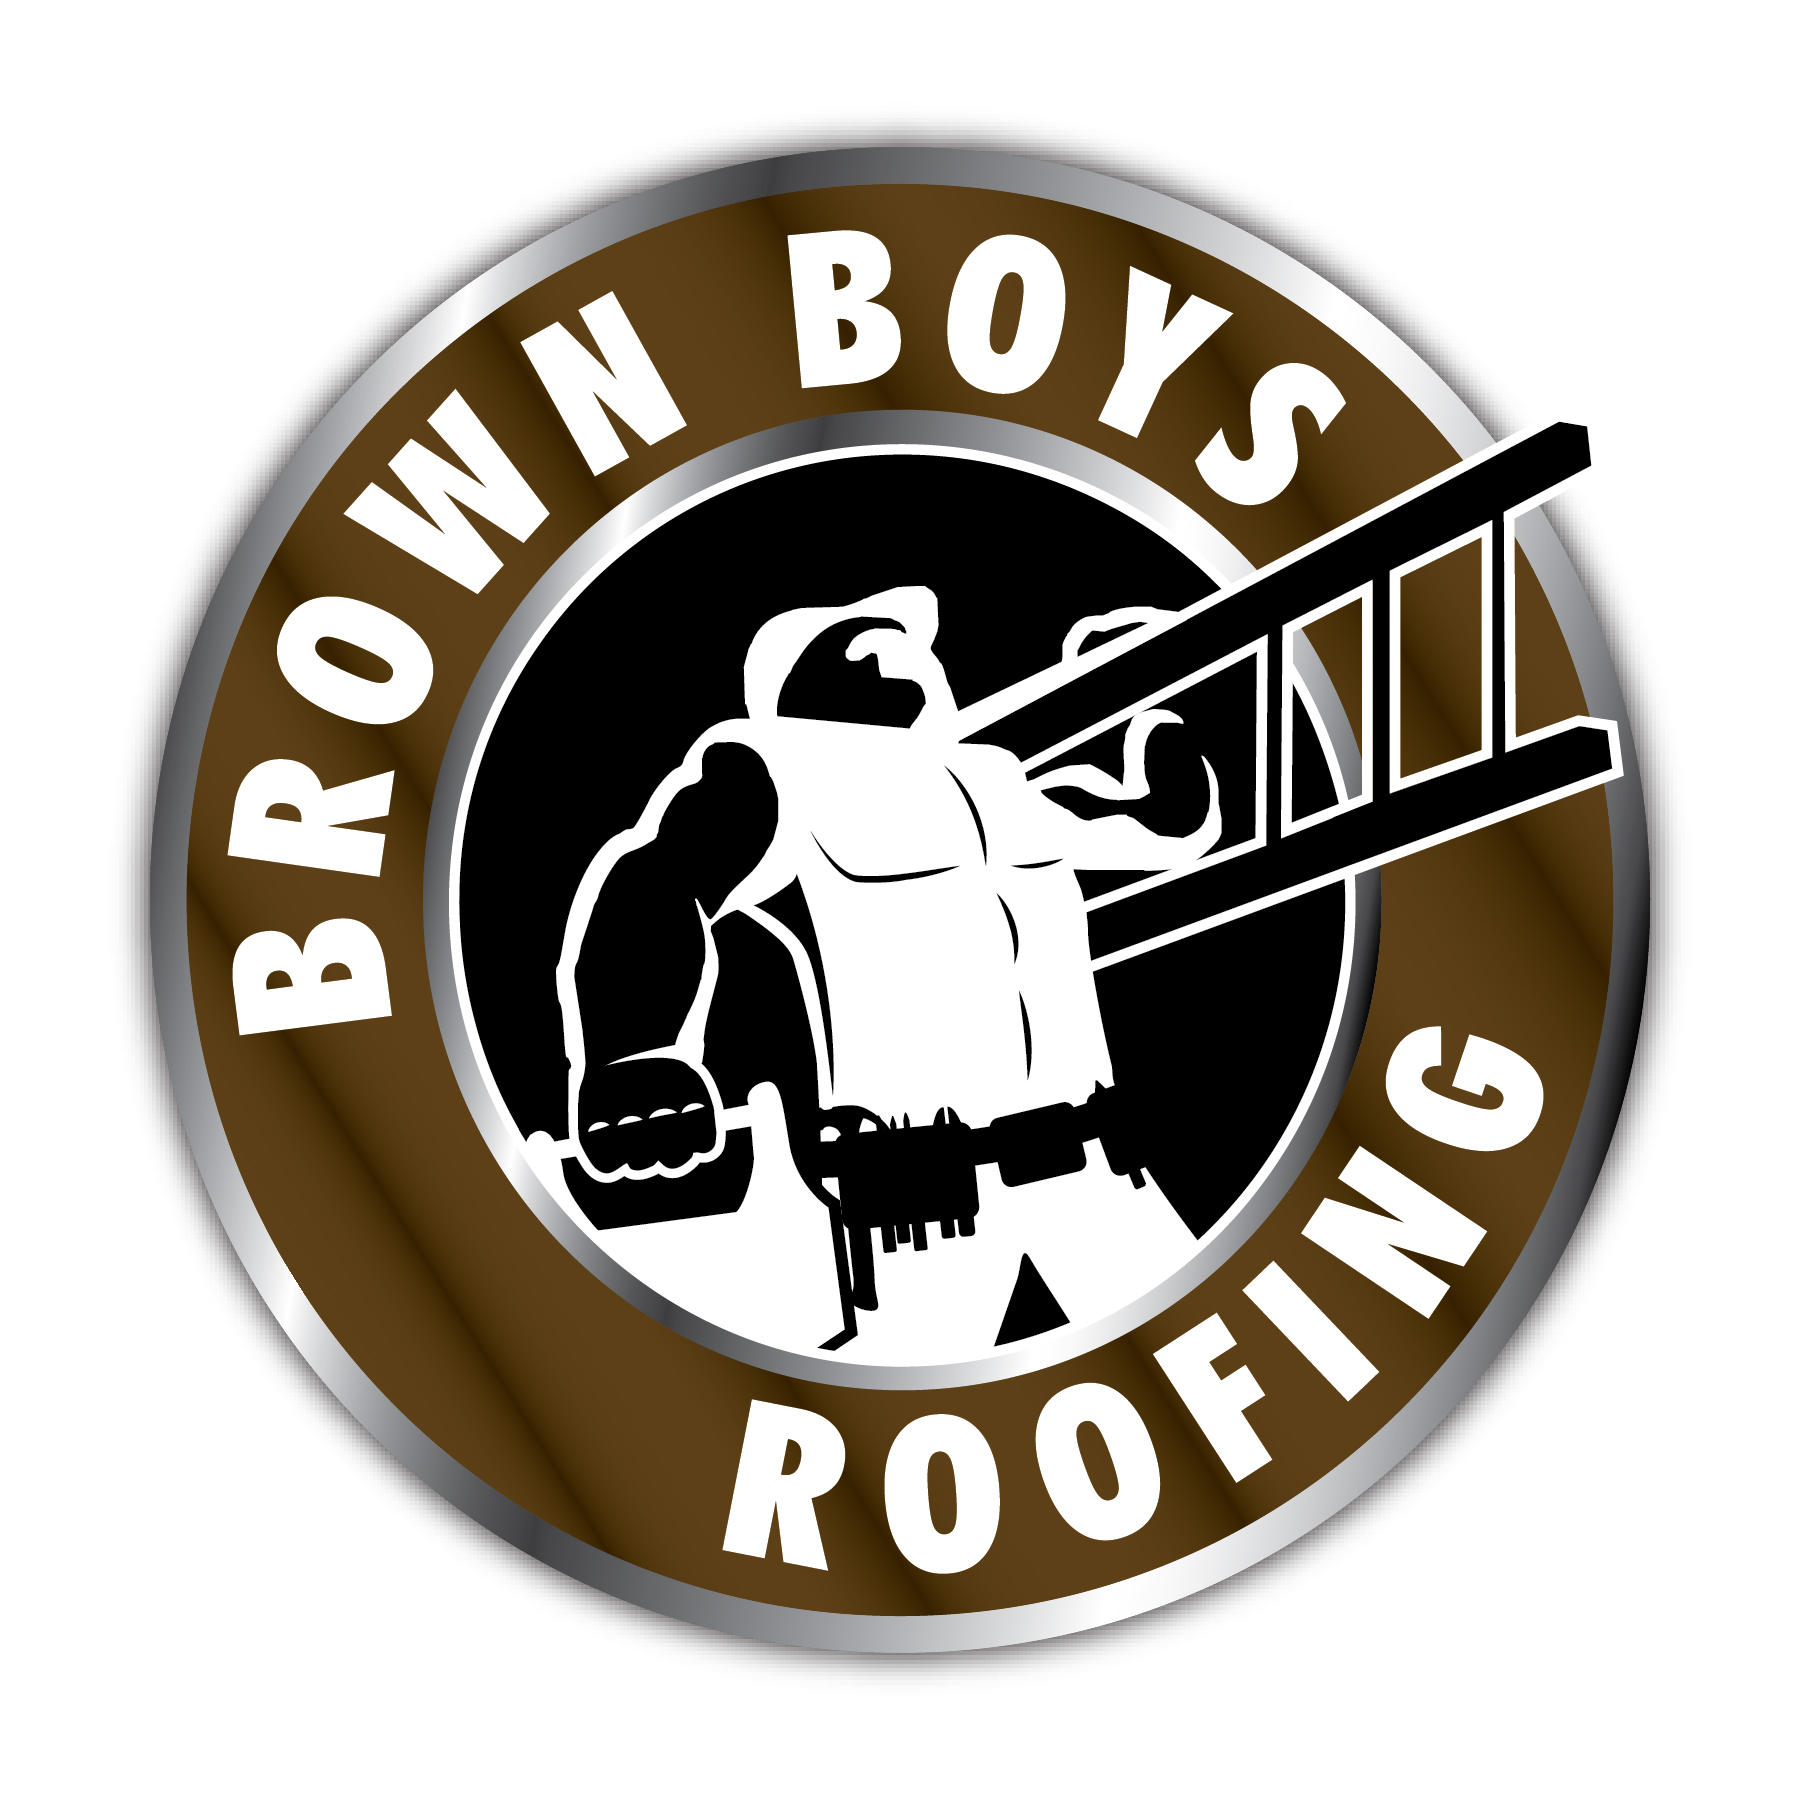 Brown Boys Roofing